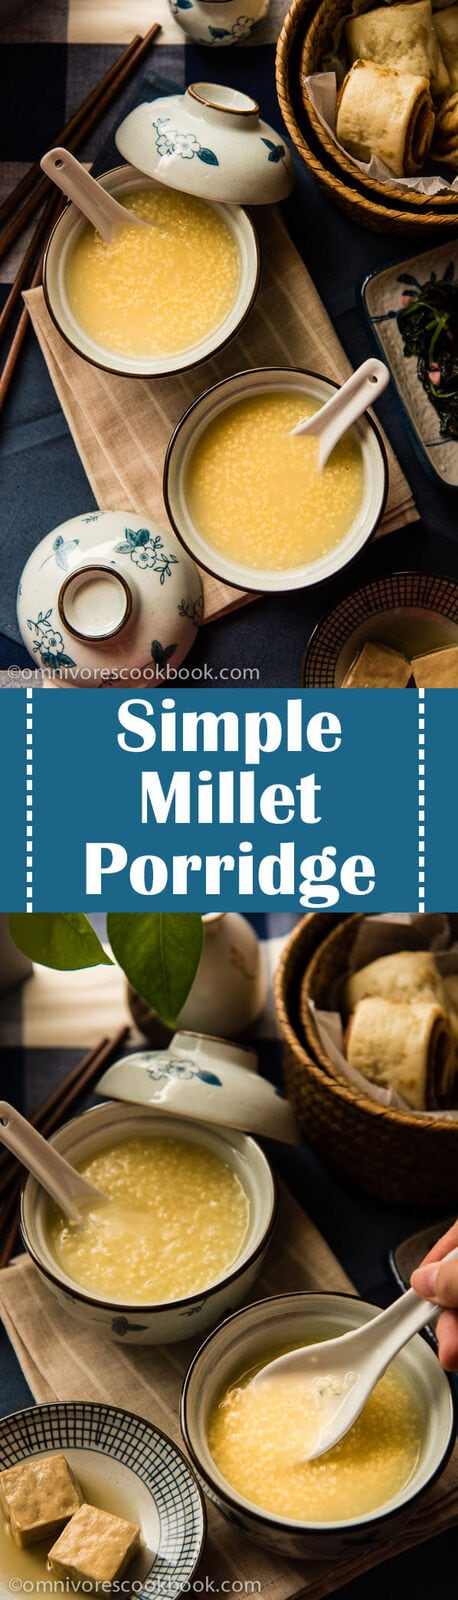 Millet Porridge - an easy, comforting, and versatile side that takes only 30 minutes to make   omnivorescookbook.com